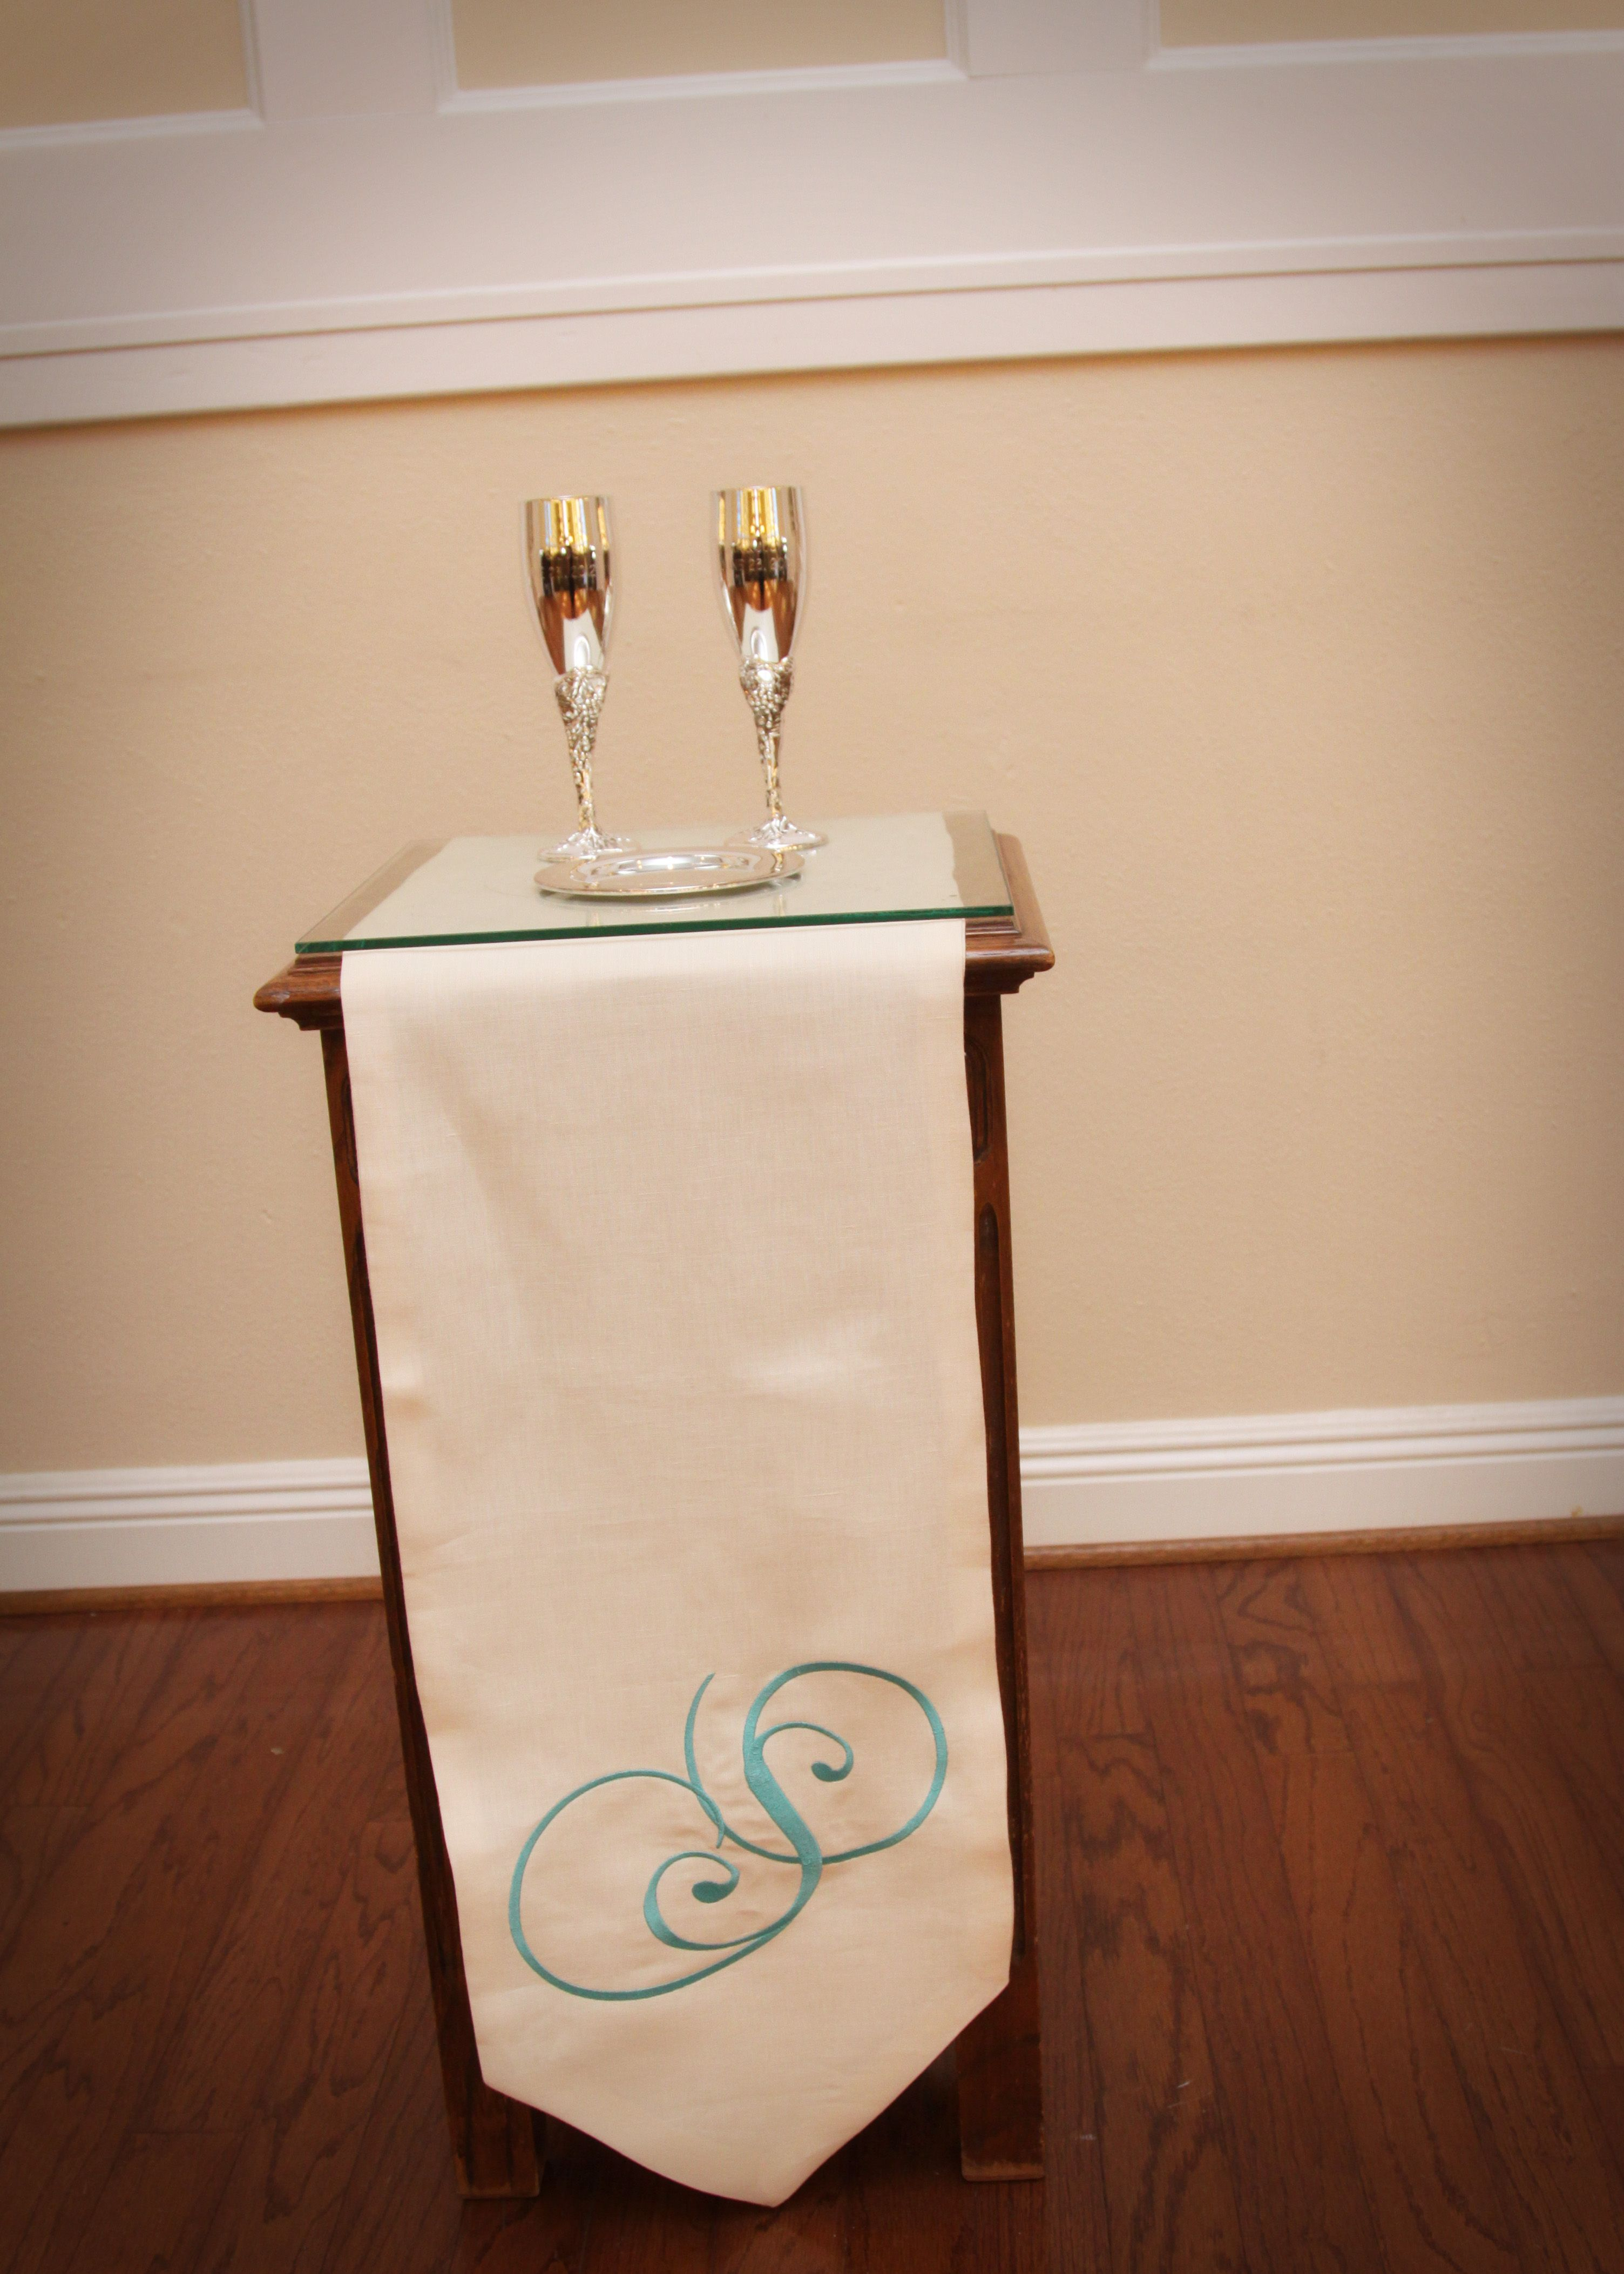 weddings - communion table with monogrammed runner